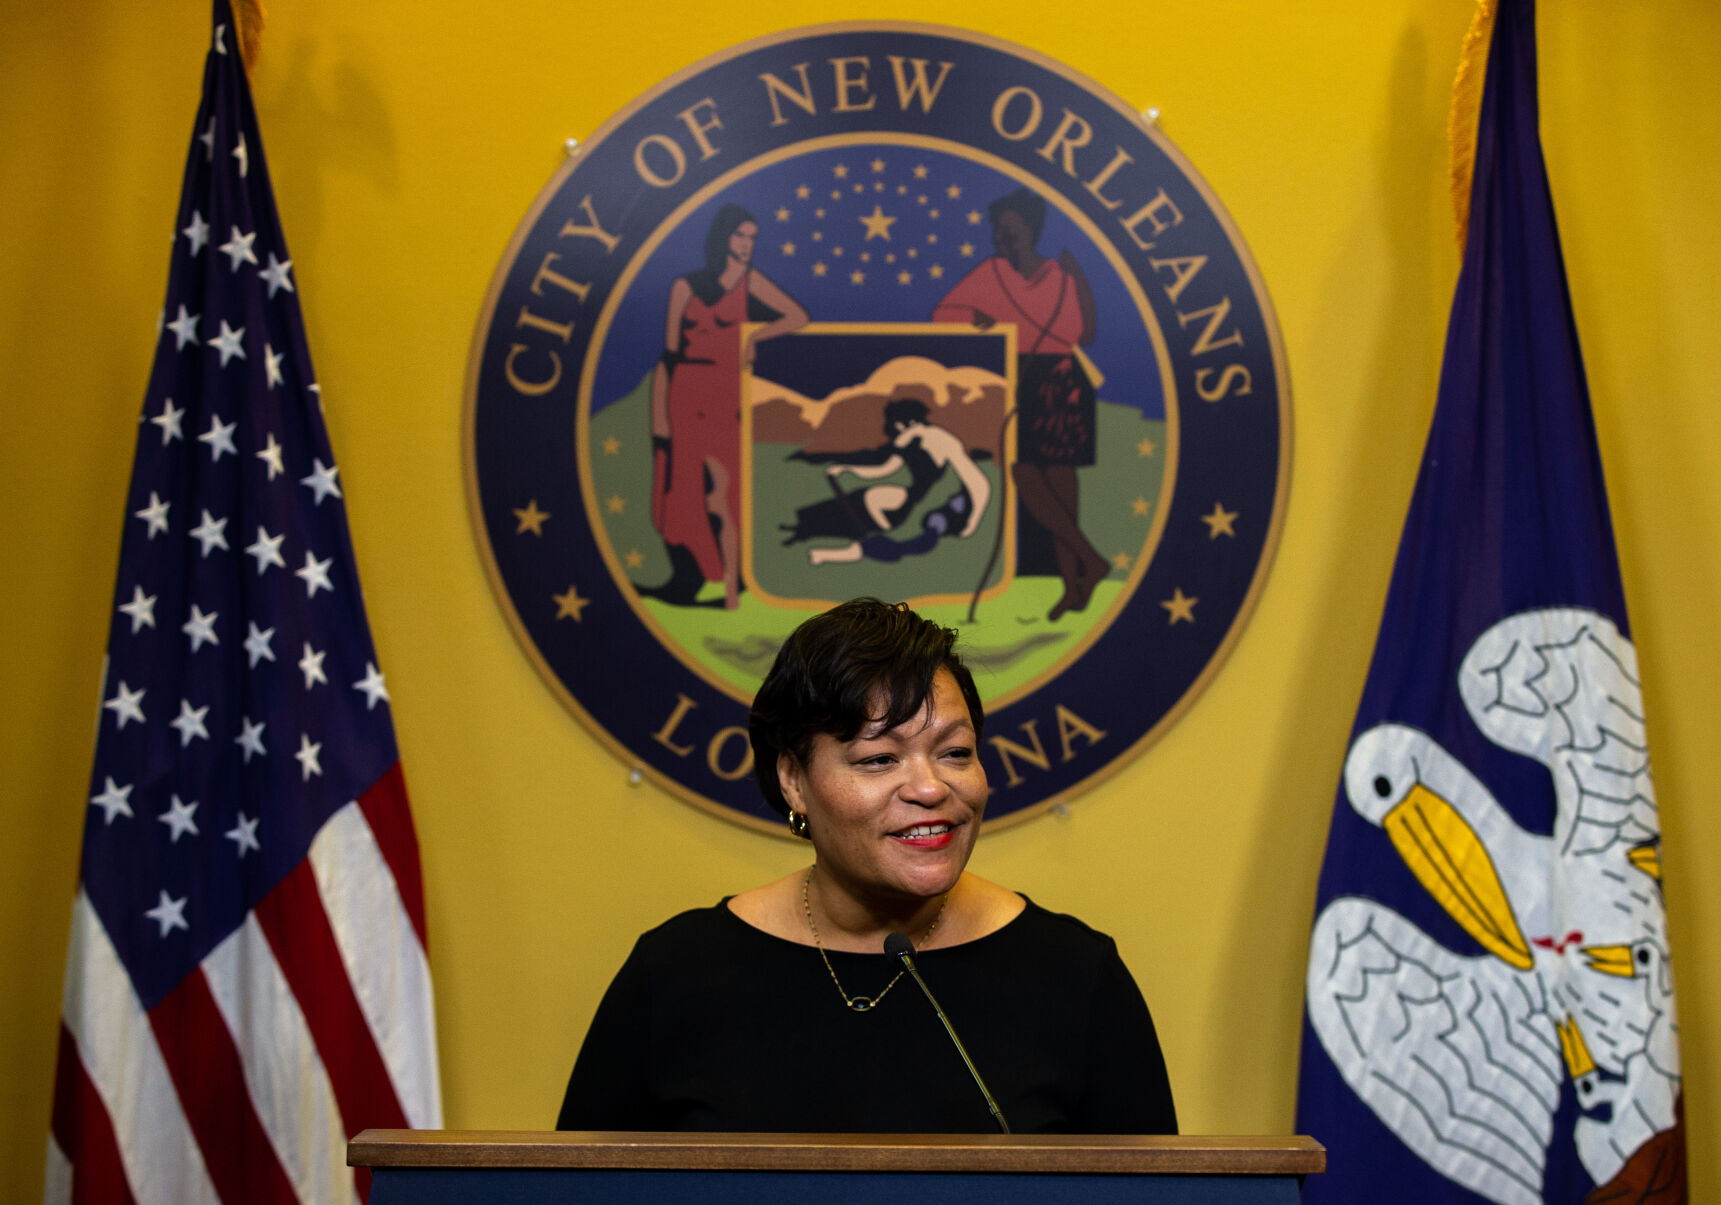 New Orleans government to offer $1.5M in mortgage help for landlords